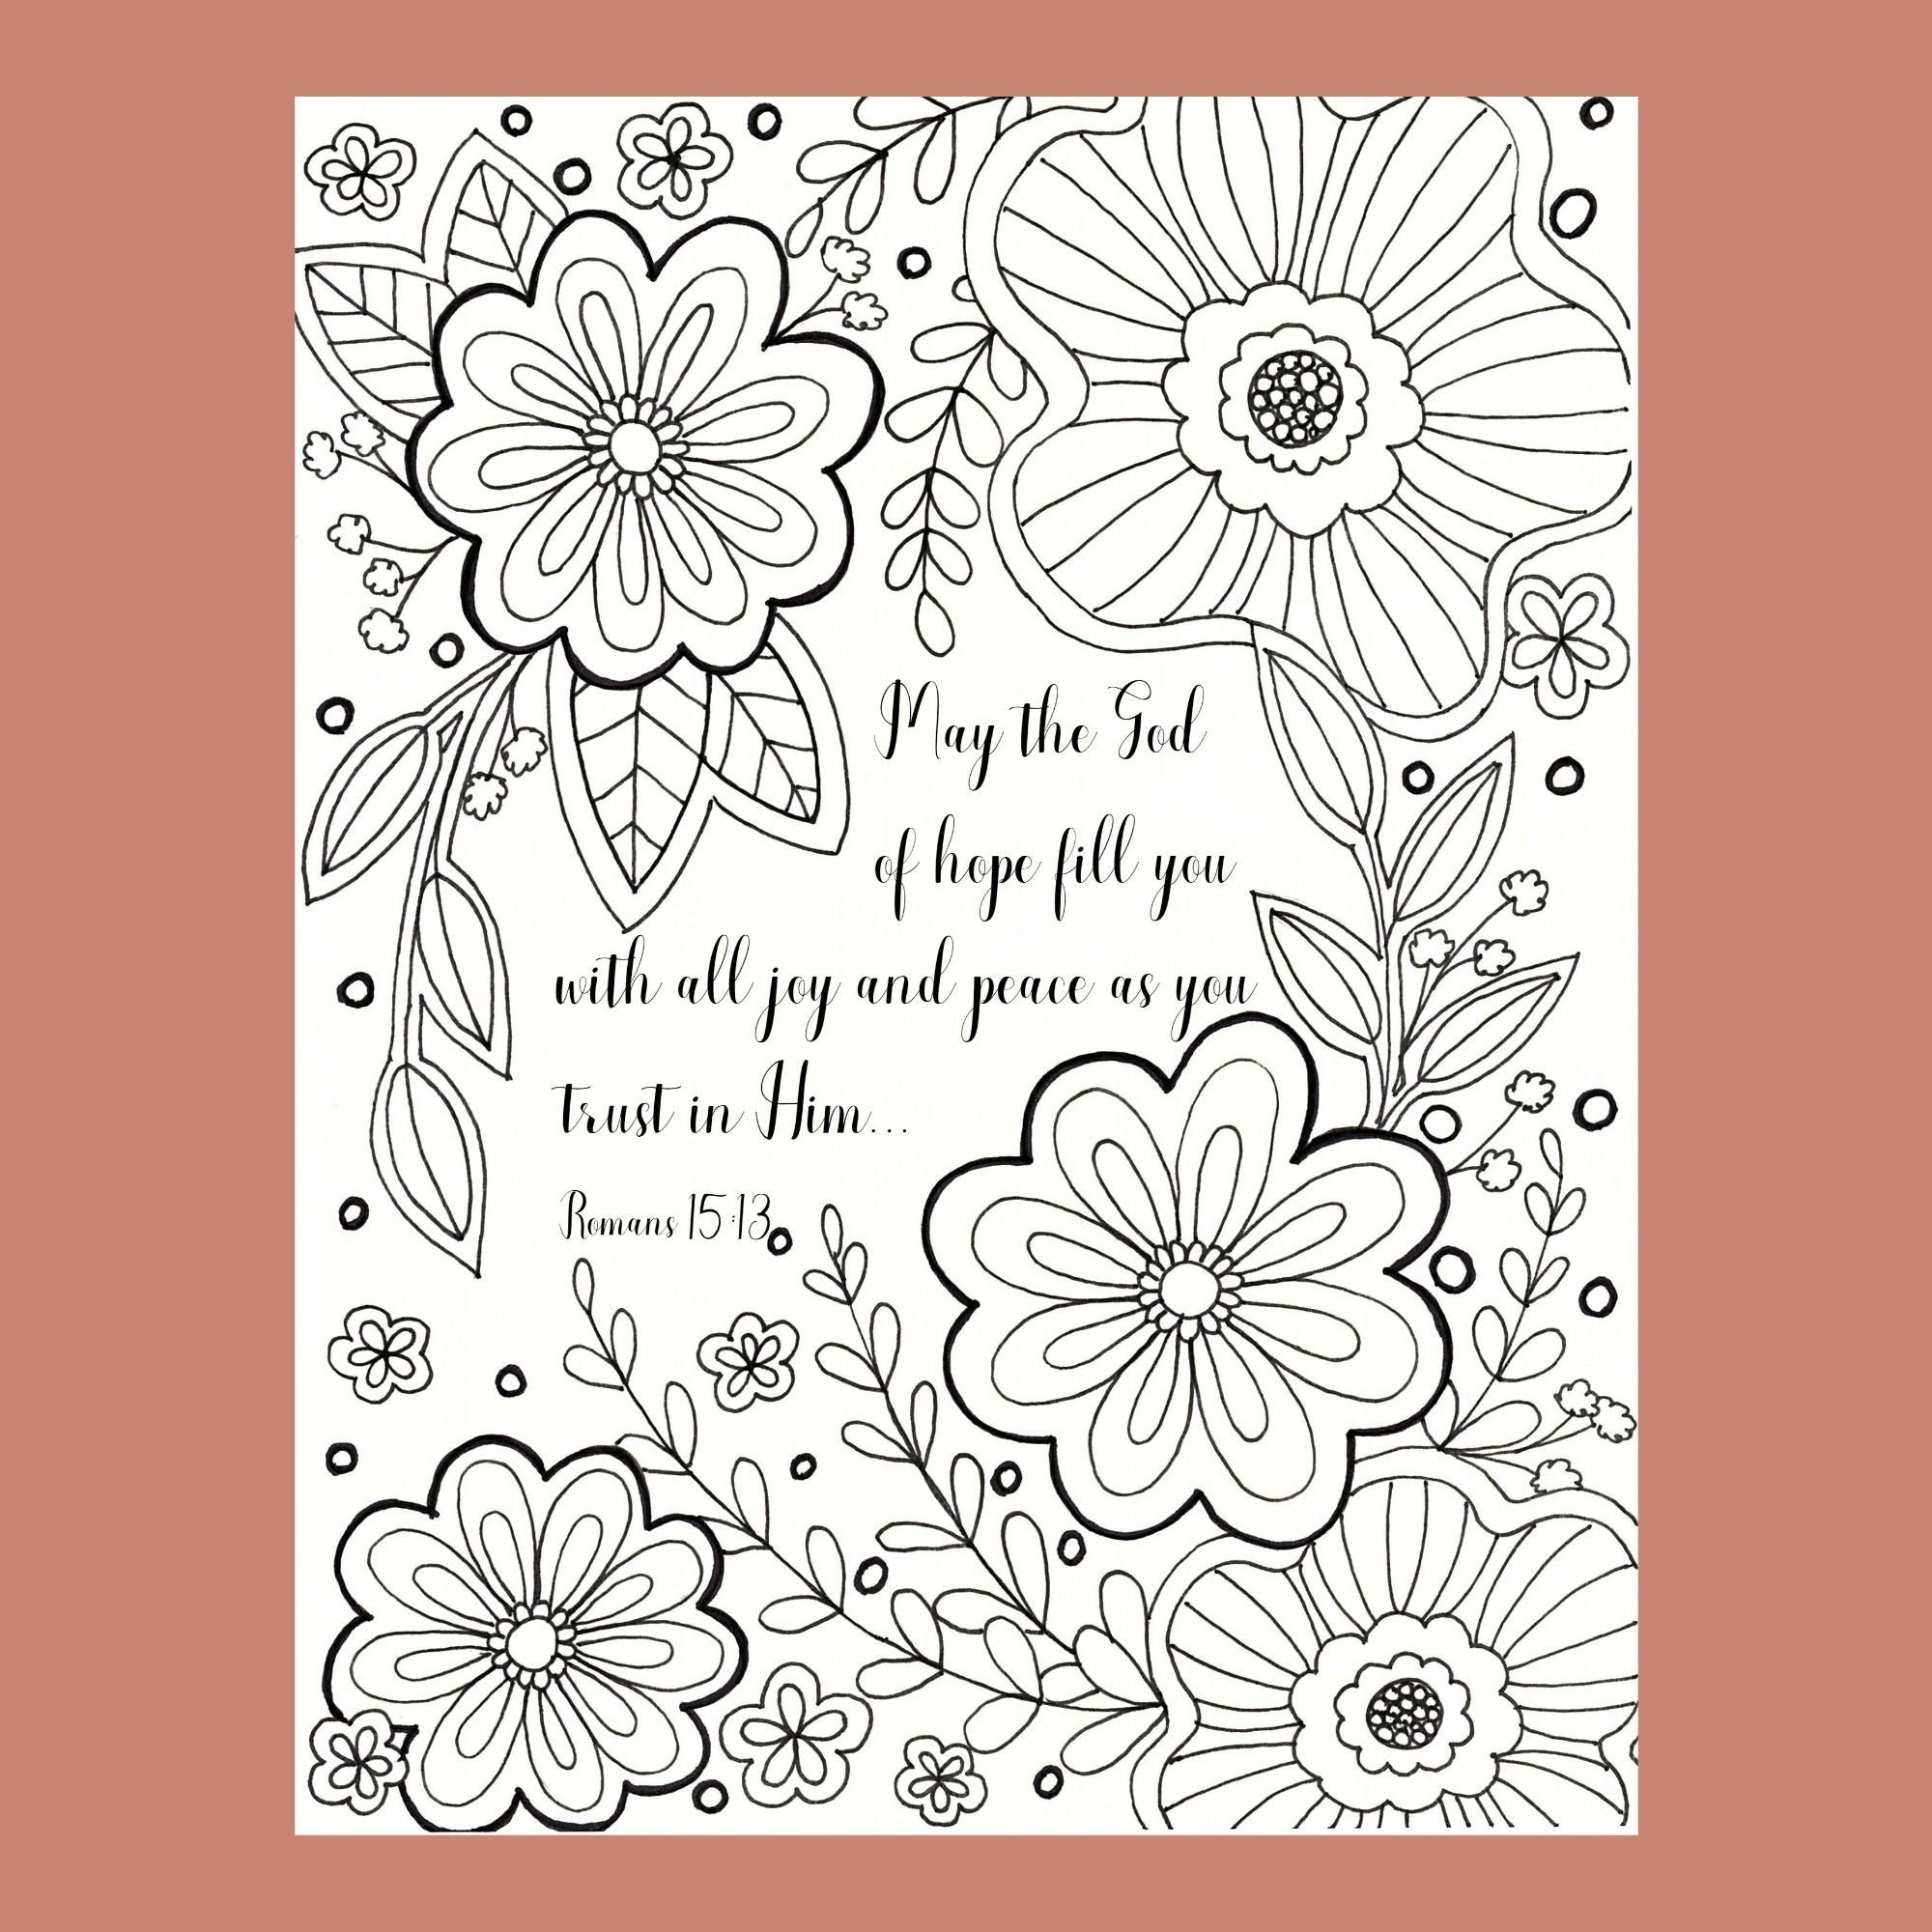 Bible Verse Coloring Page Scripture Coloring Christian Coloring Page Flower Coloring Page Romans 15 13 Christian Coloring Coloring Pages Scripture Coloring